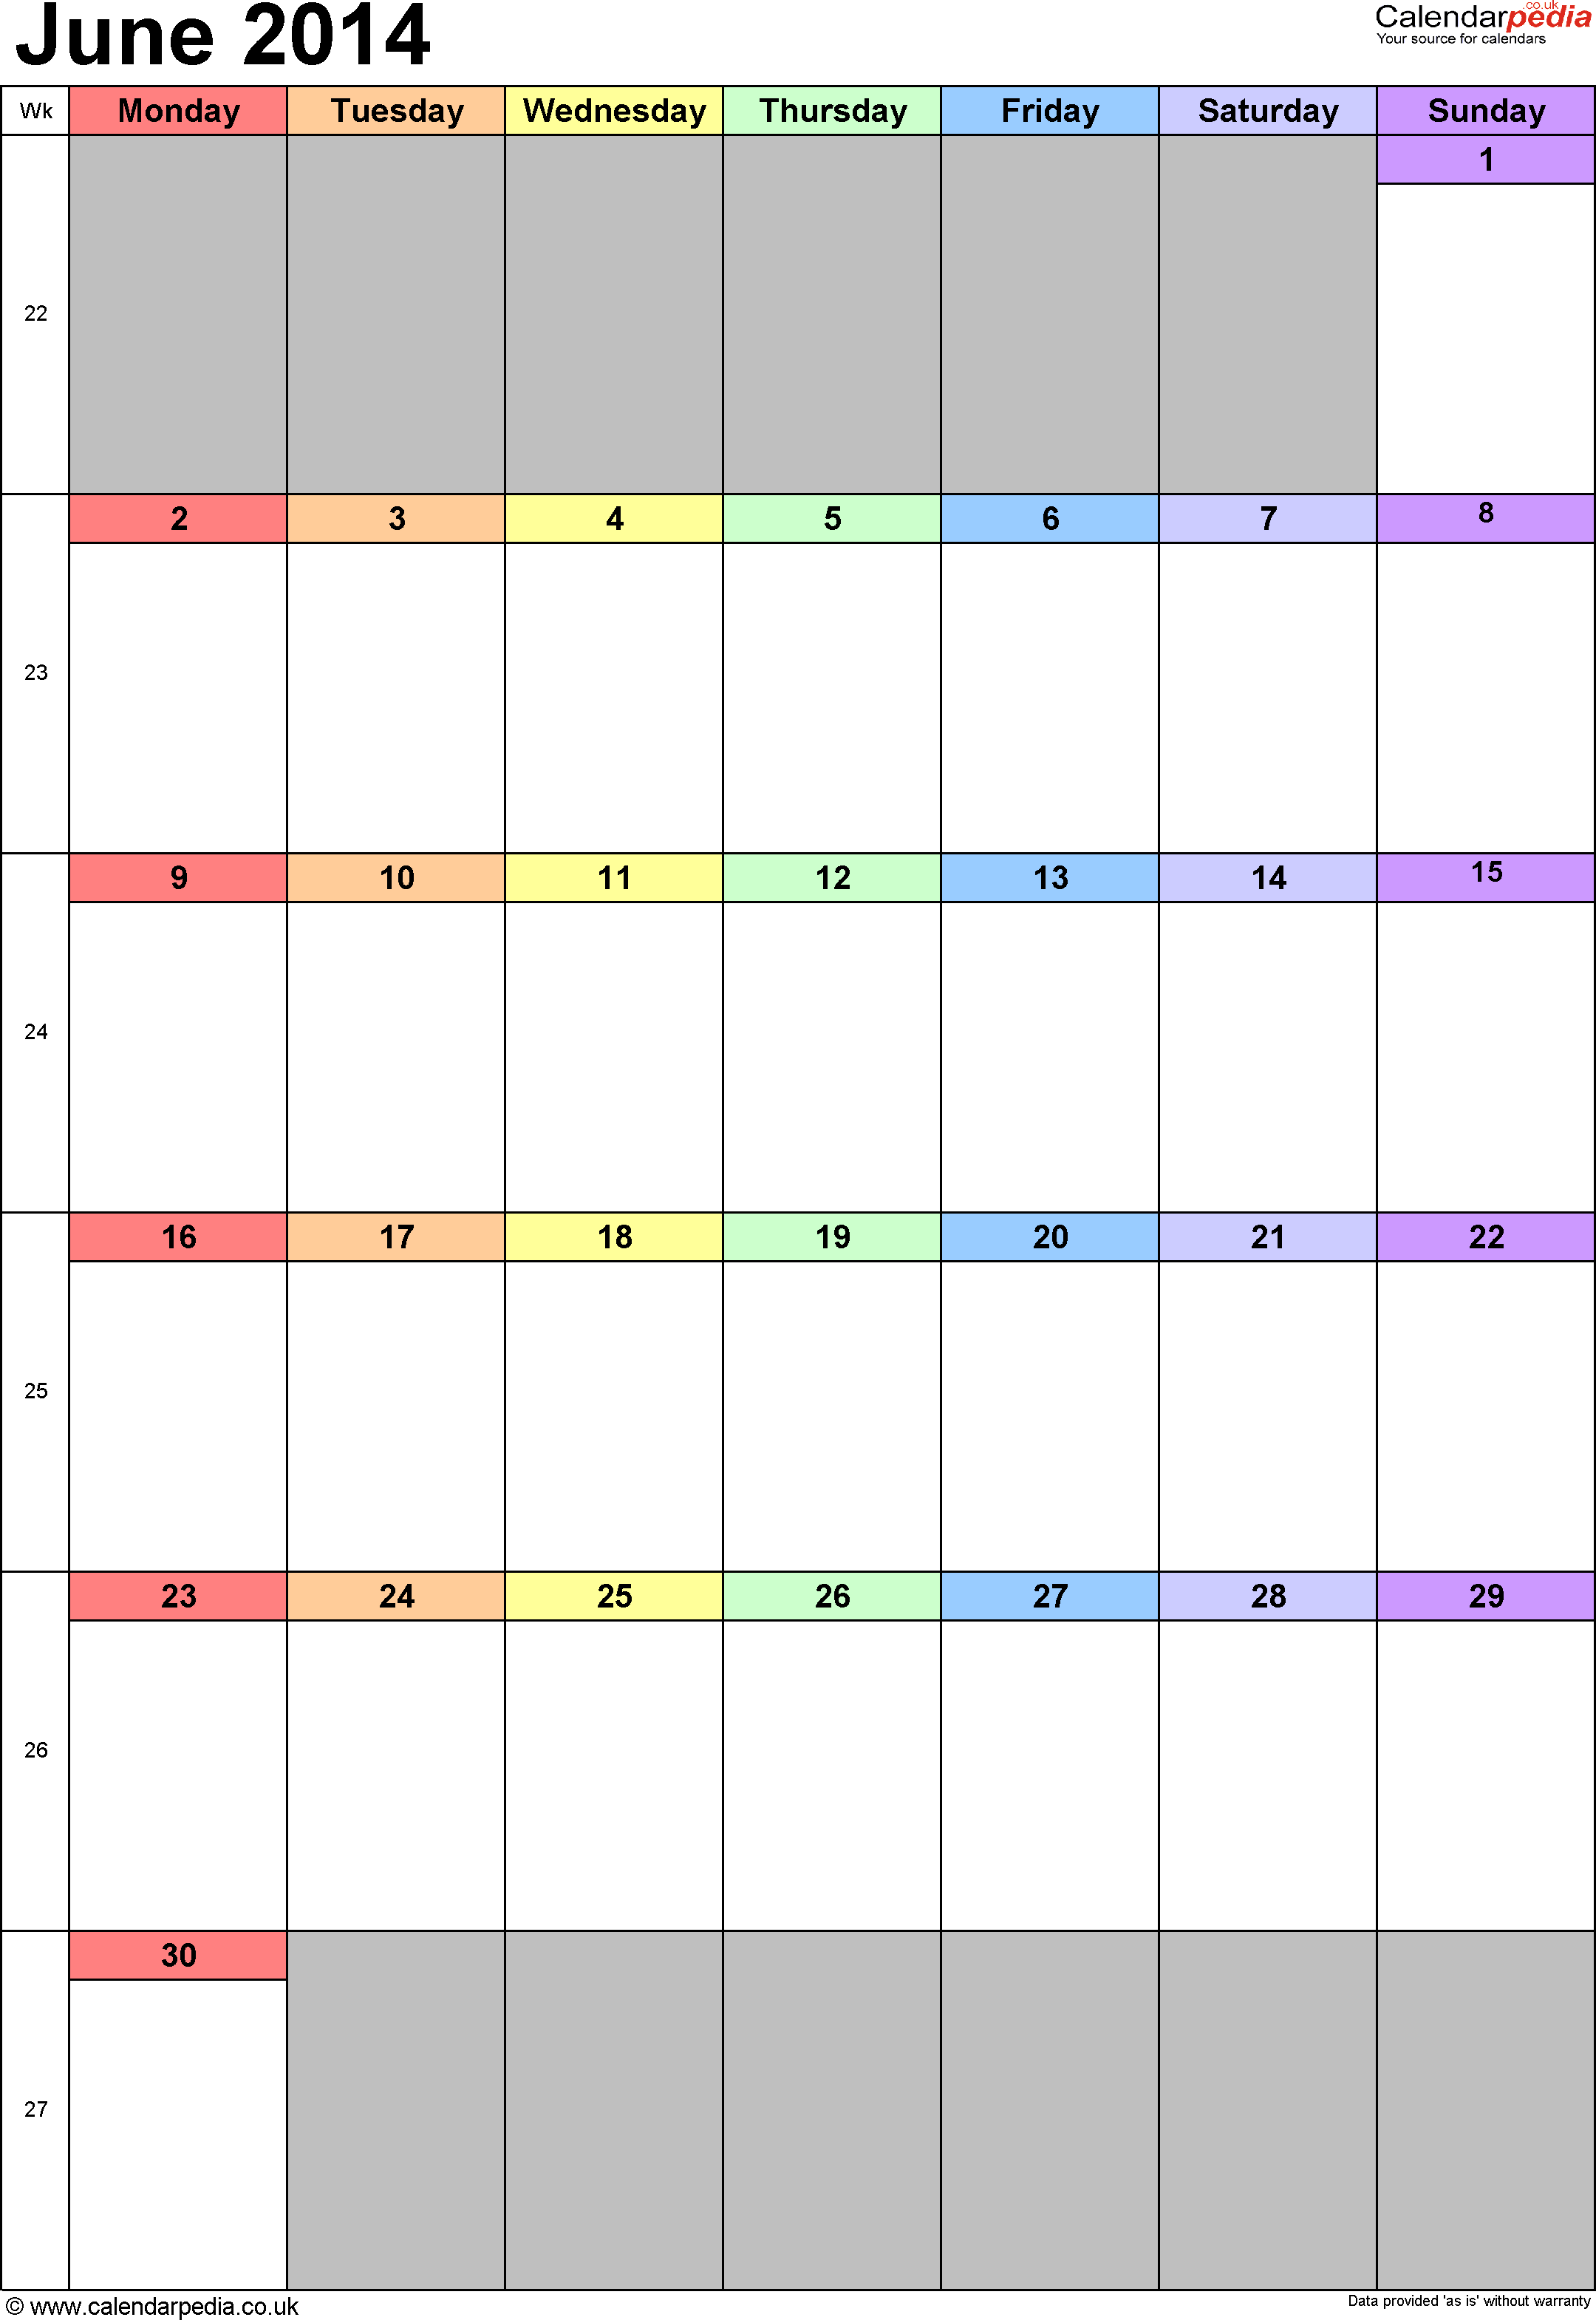 Calendar June 2014 portrait orientation, 1 page, with UK bank holidays and week numbers